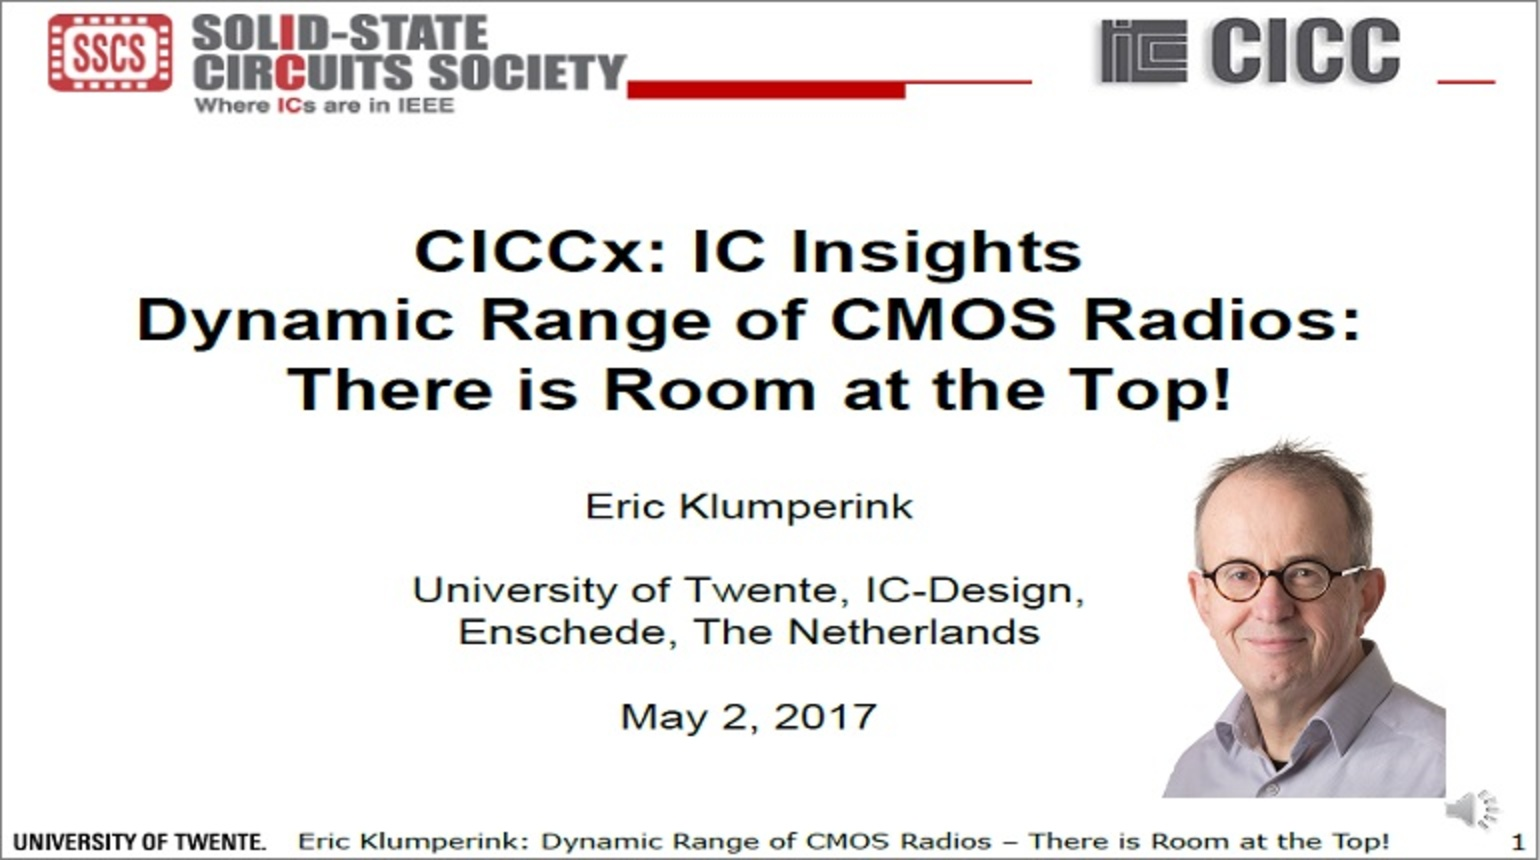 Dynamic Range of CMOS Radios:There is Room at the Top! Video